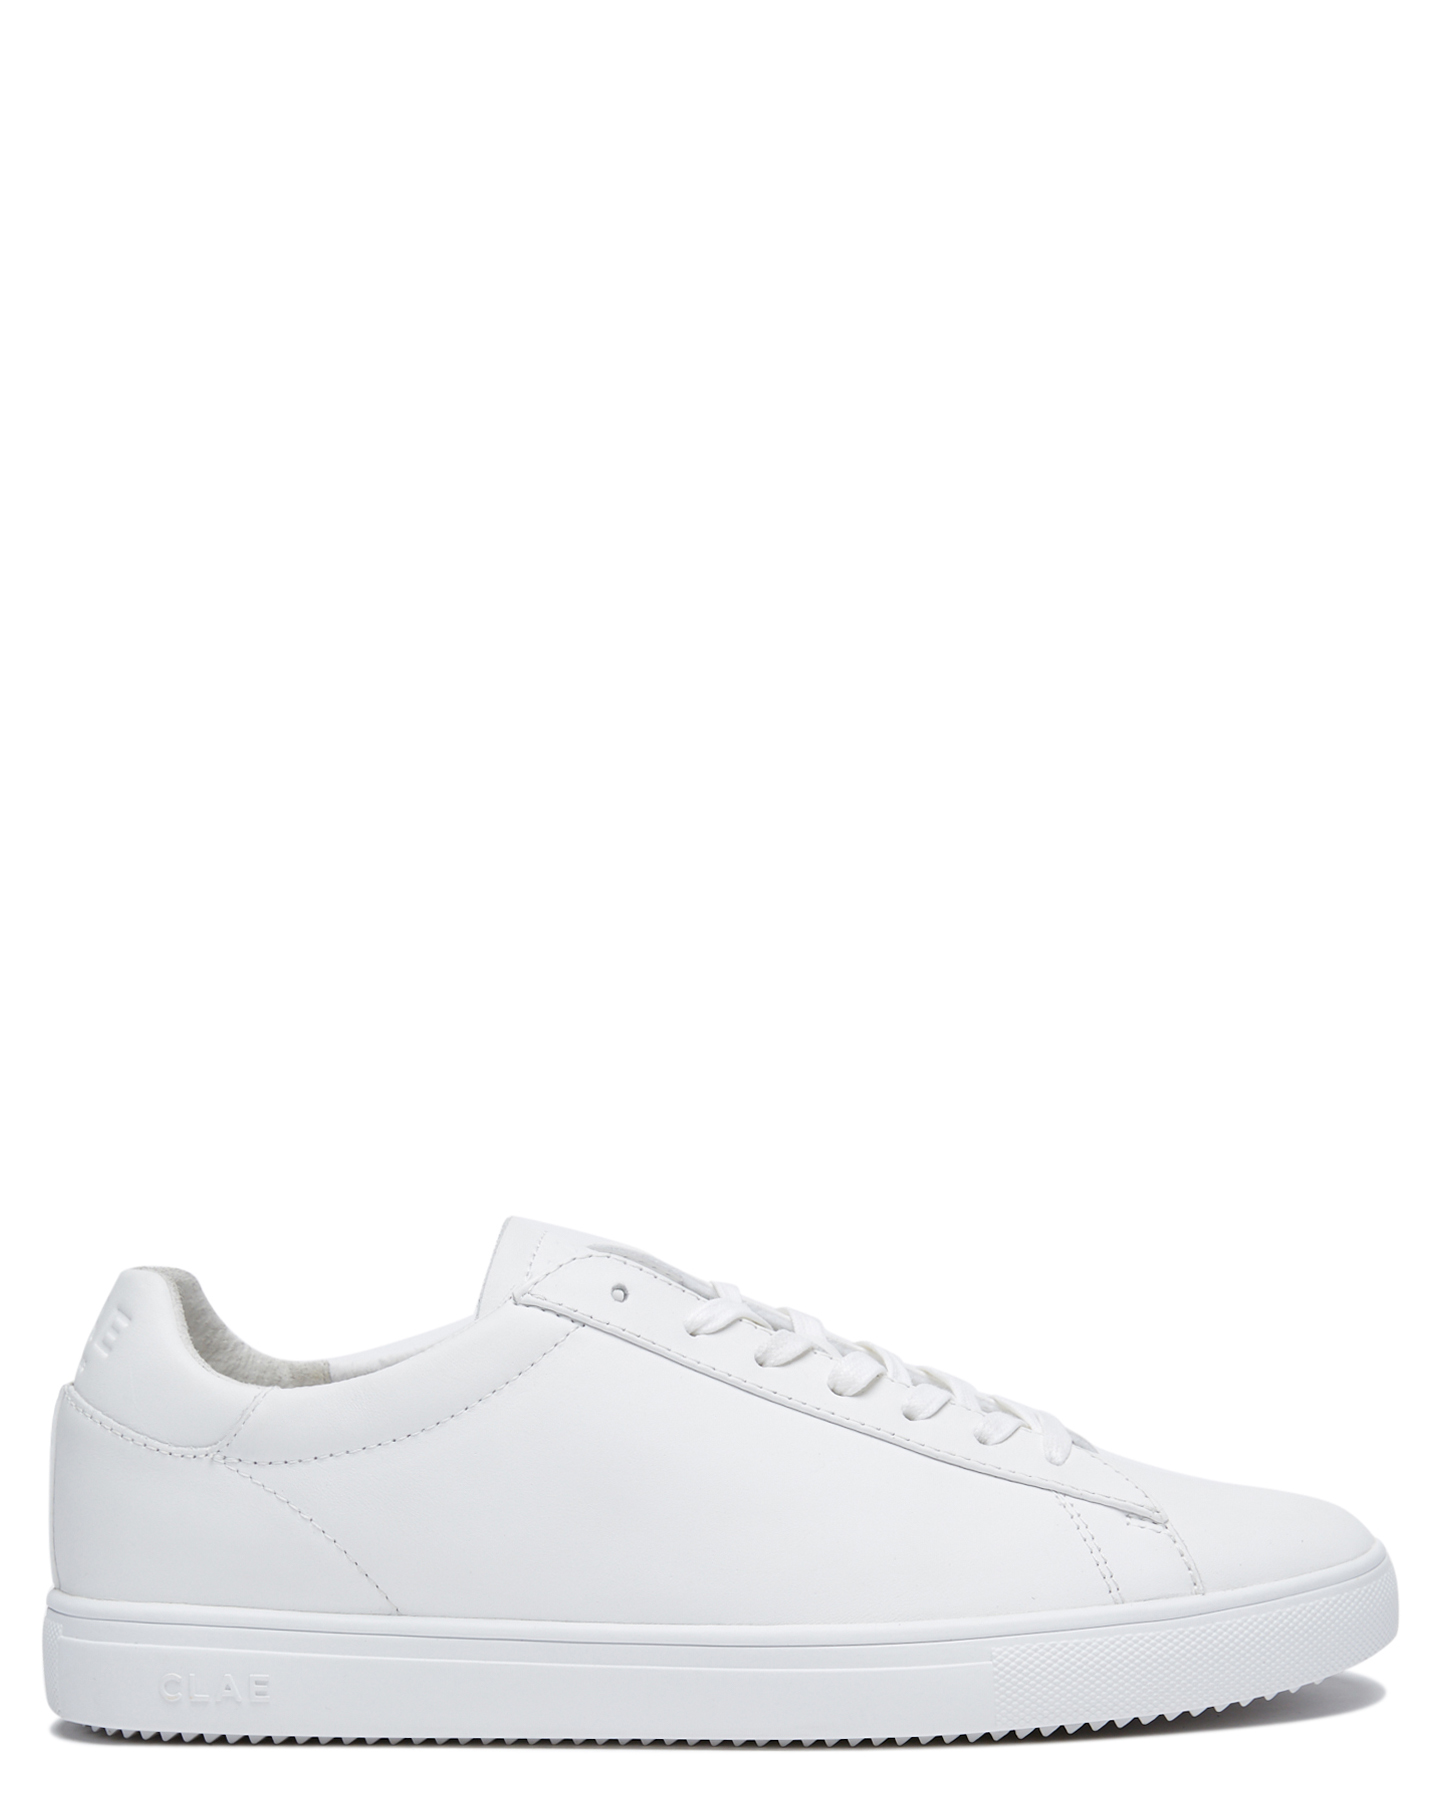 Clae Bradley Mens Shoe Triple White Leather